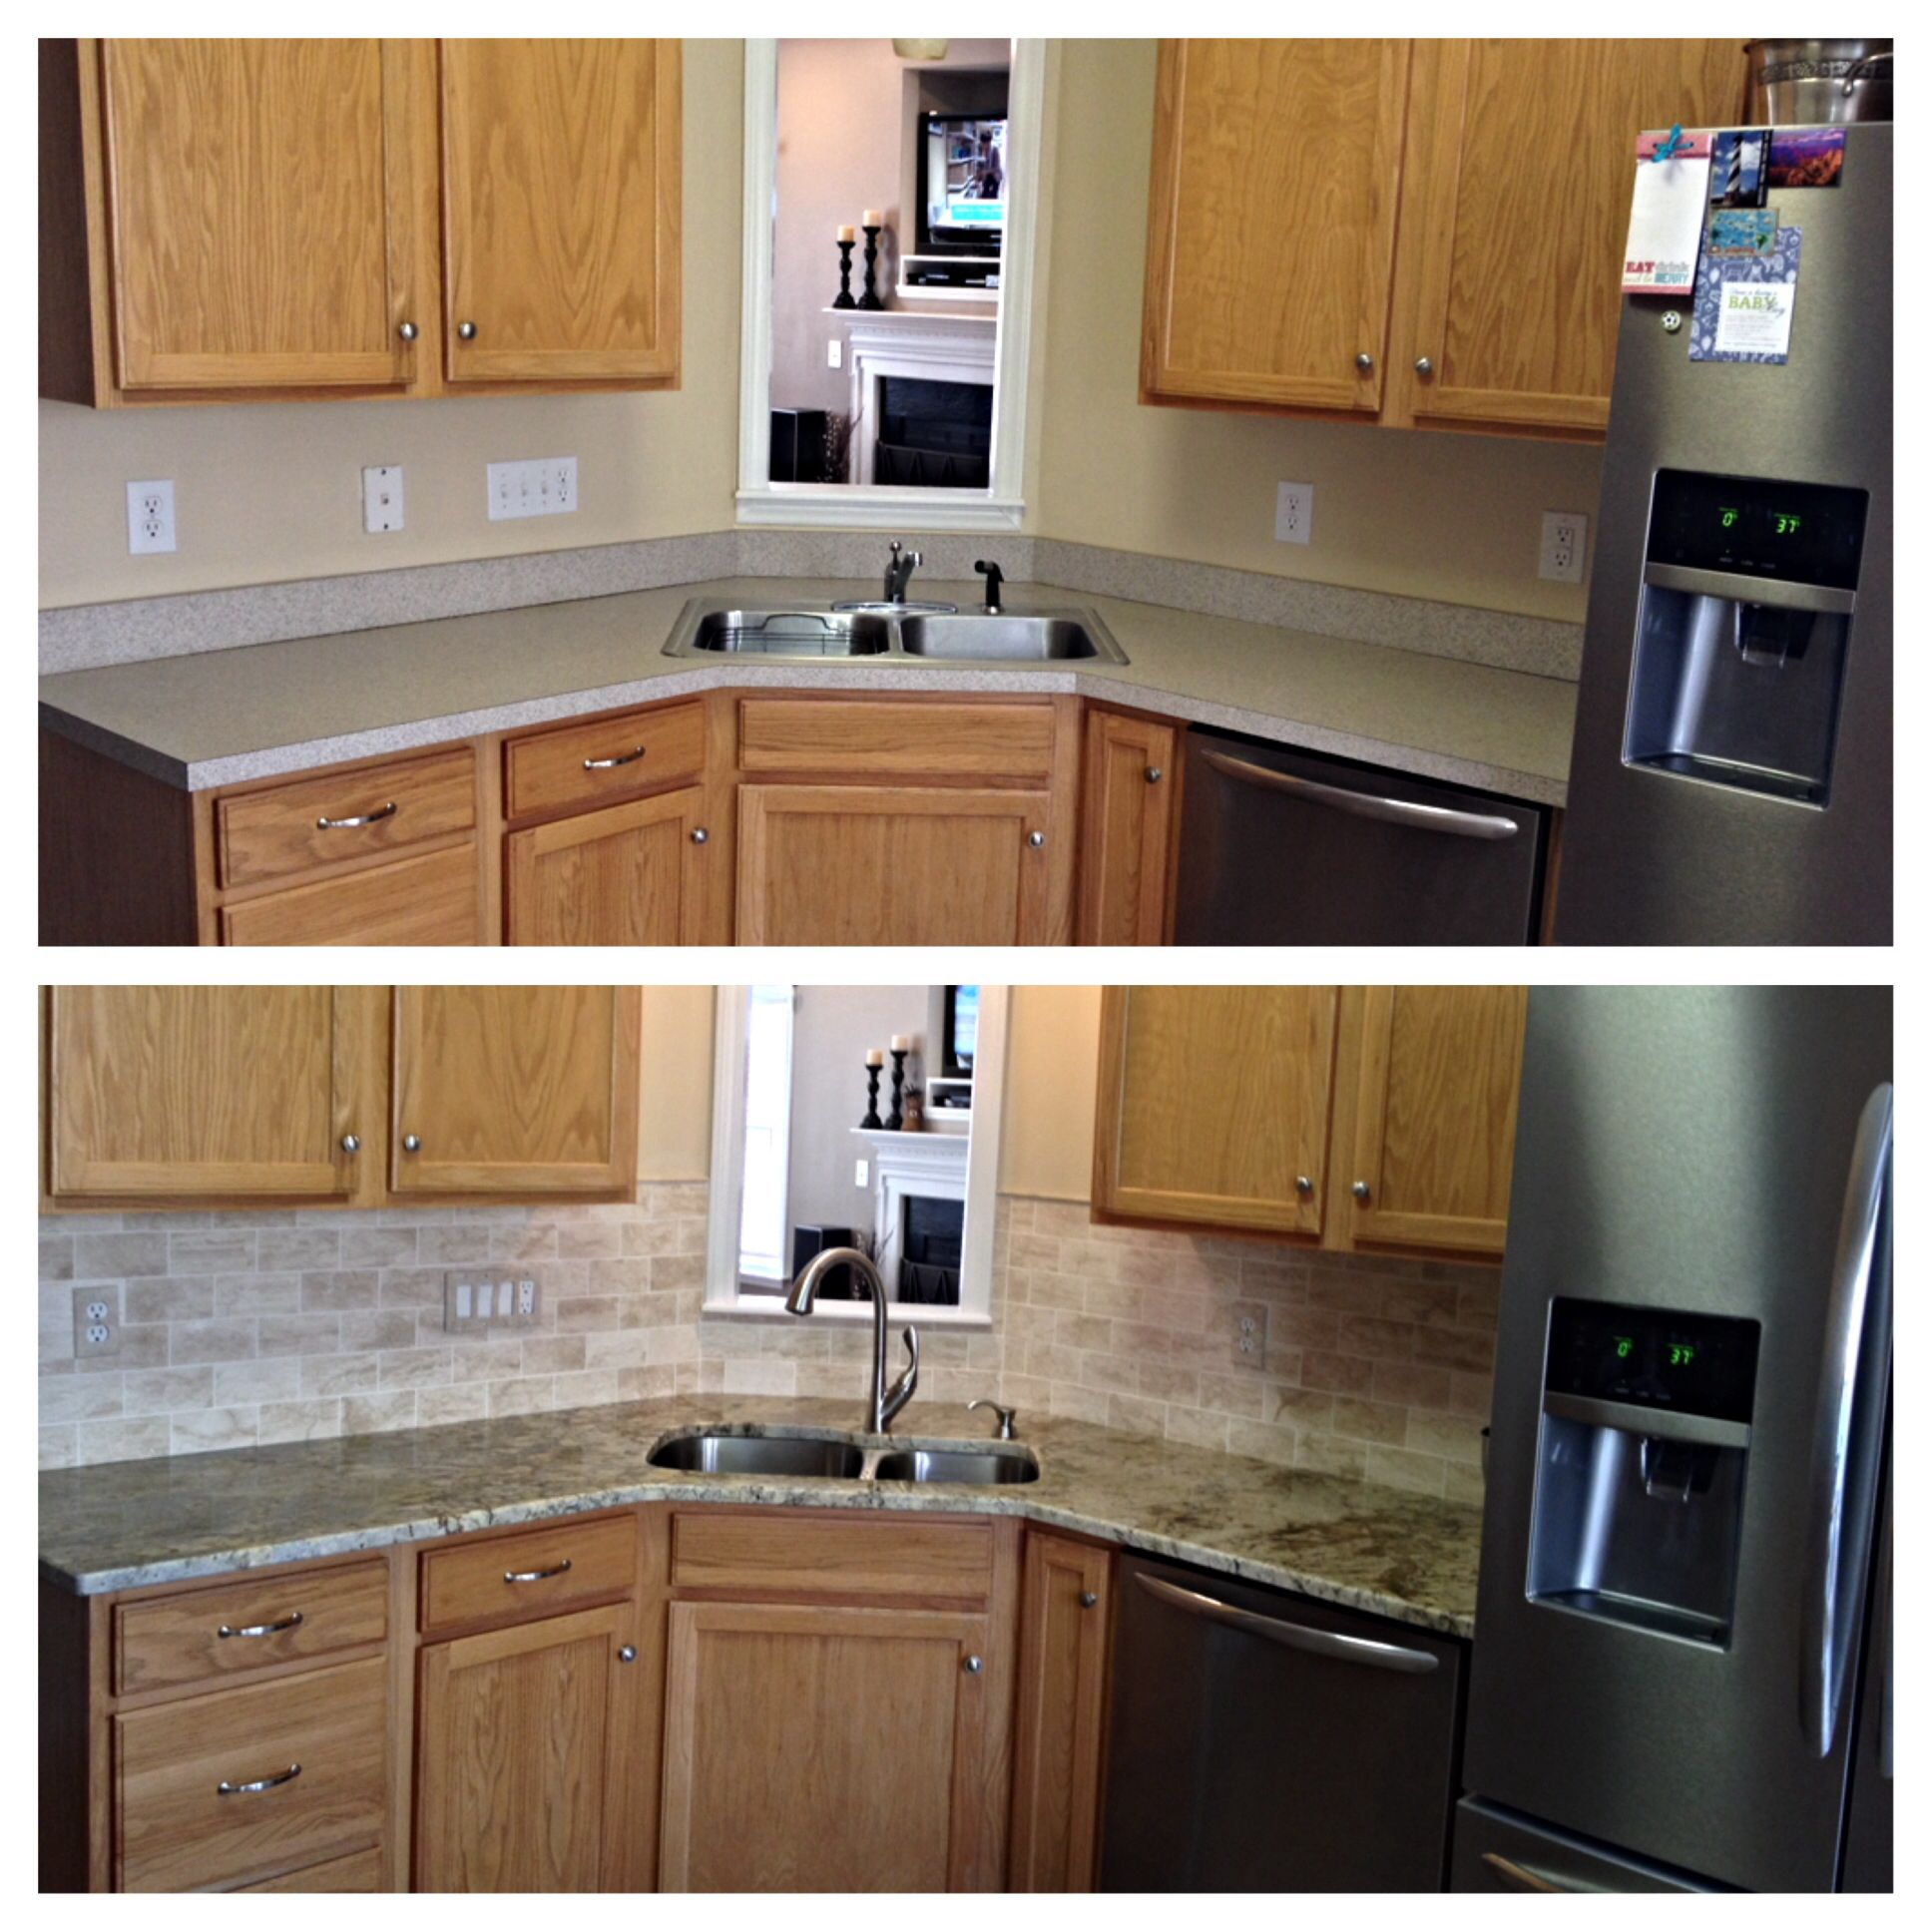 Kitchen Update! Before And After!